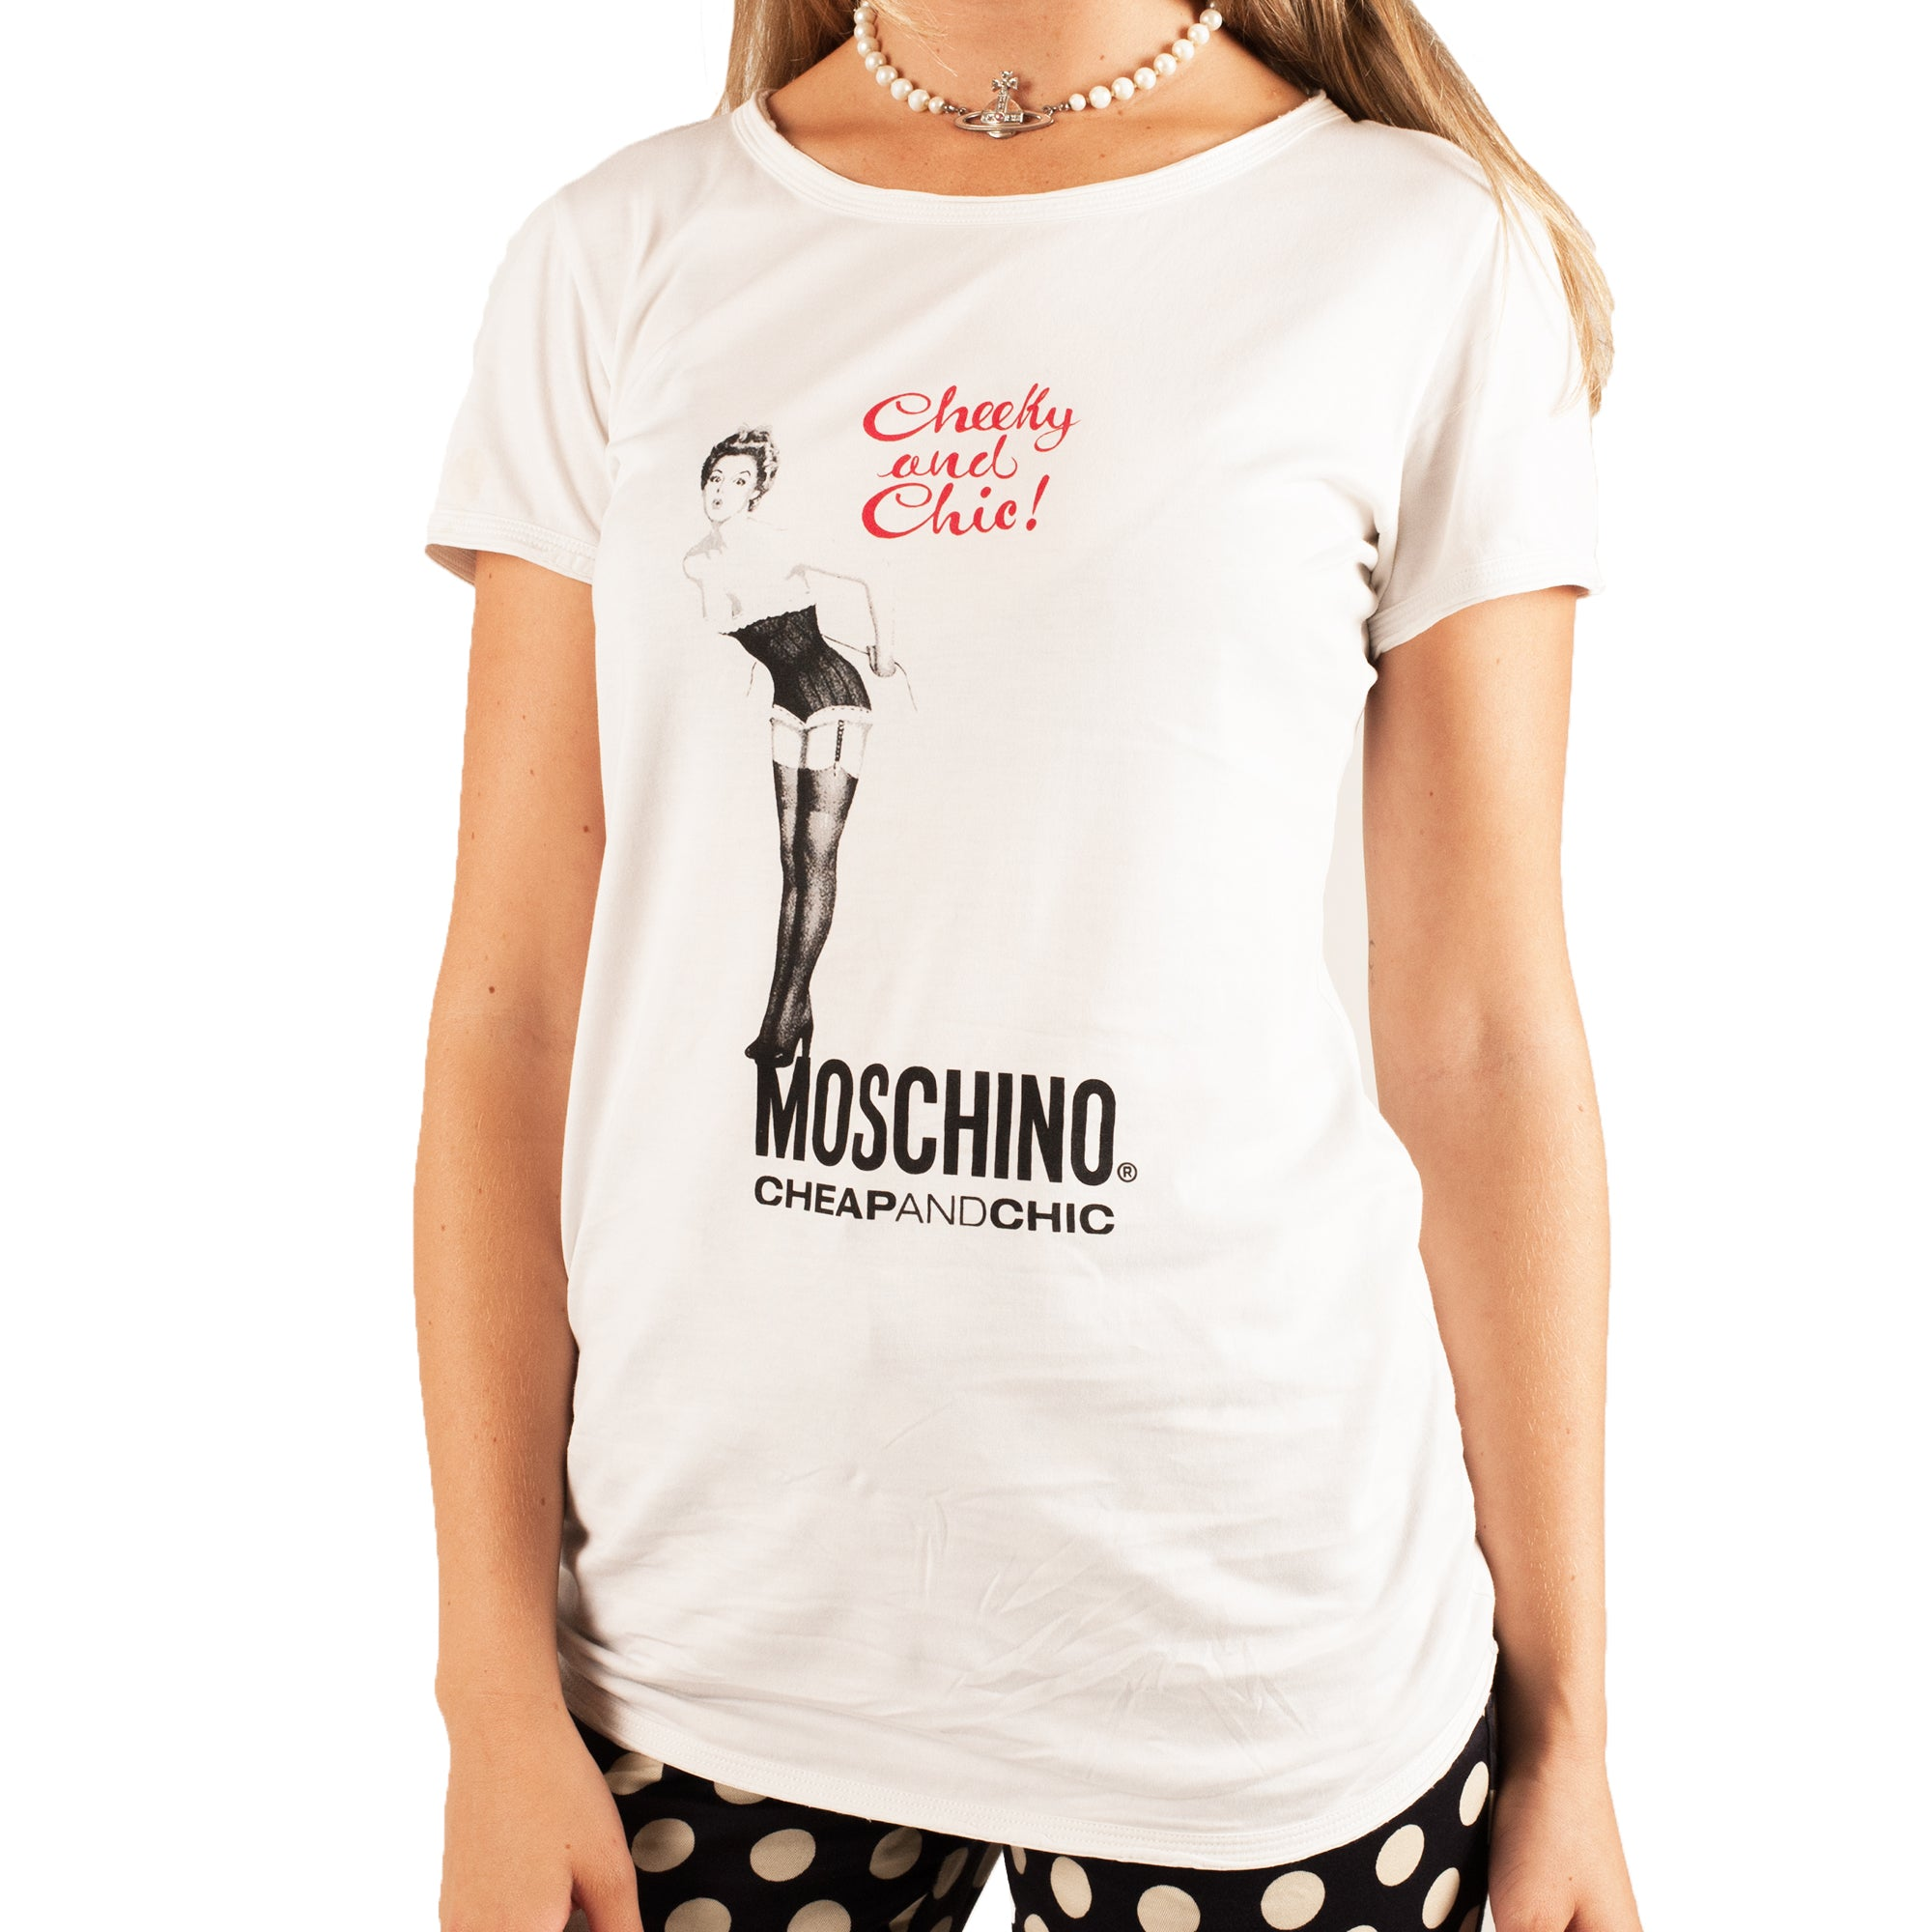 Moschino Cheeky and Chic T-shirt (White) UK 6-10